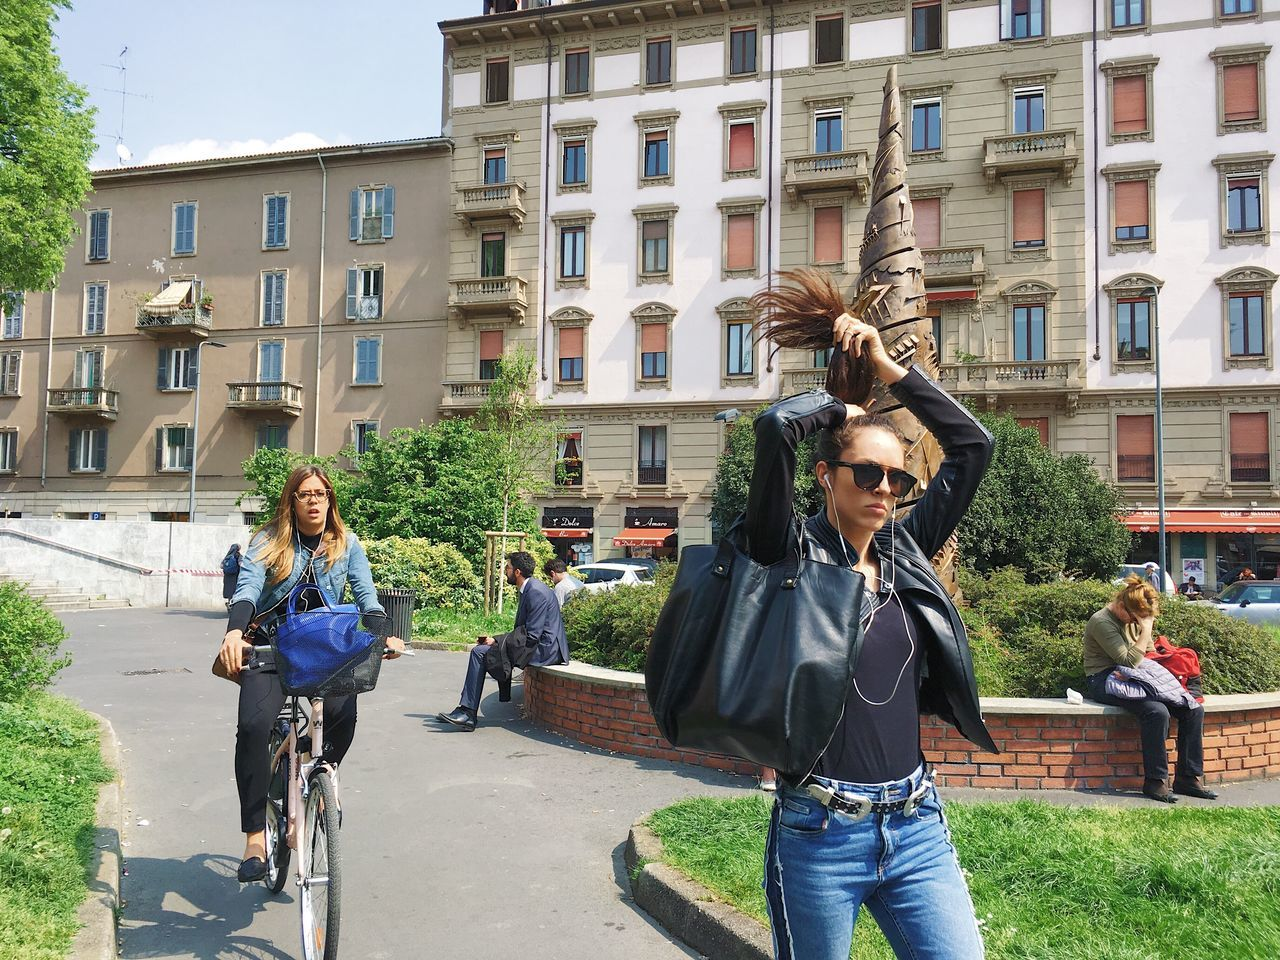 young women, young adult, bicycle, carefree, city, arts culture and entertainment, adult, people, adults only, city life, outdoors, real people, women, day, togetherness, architecture